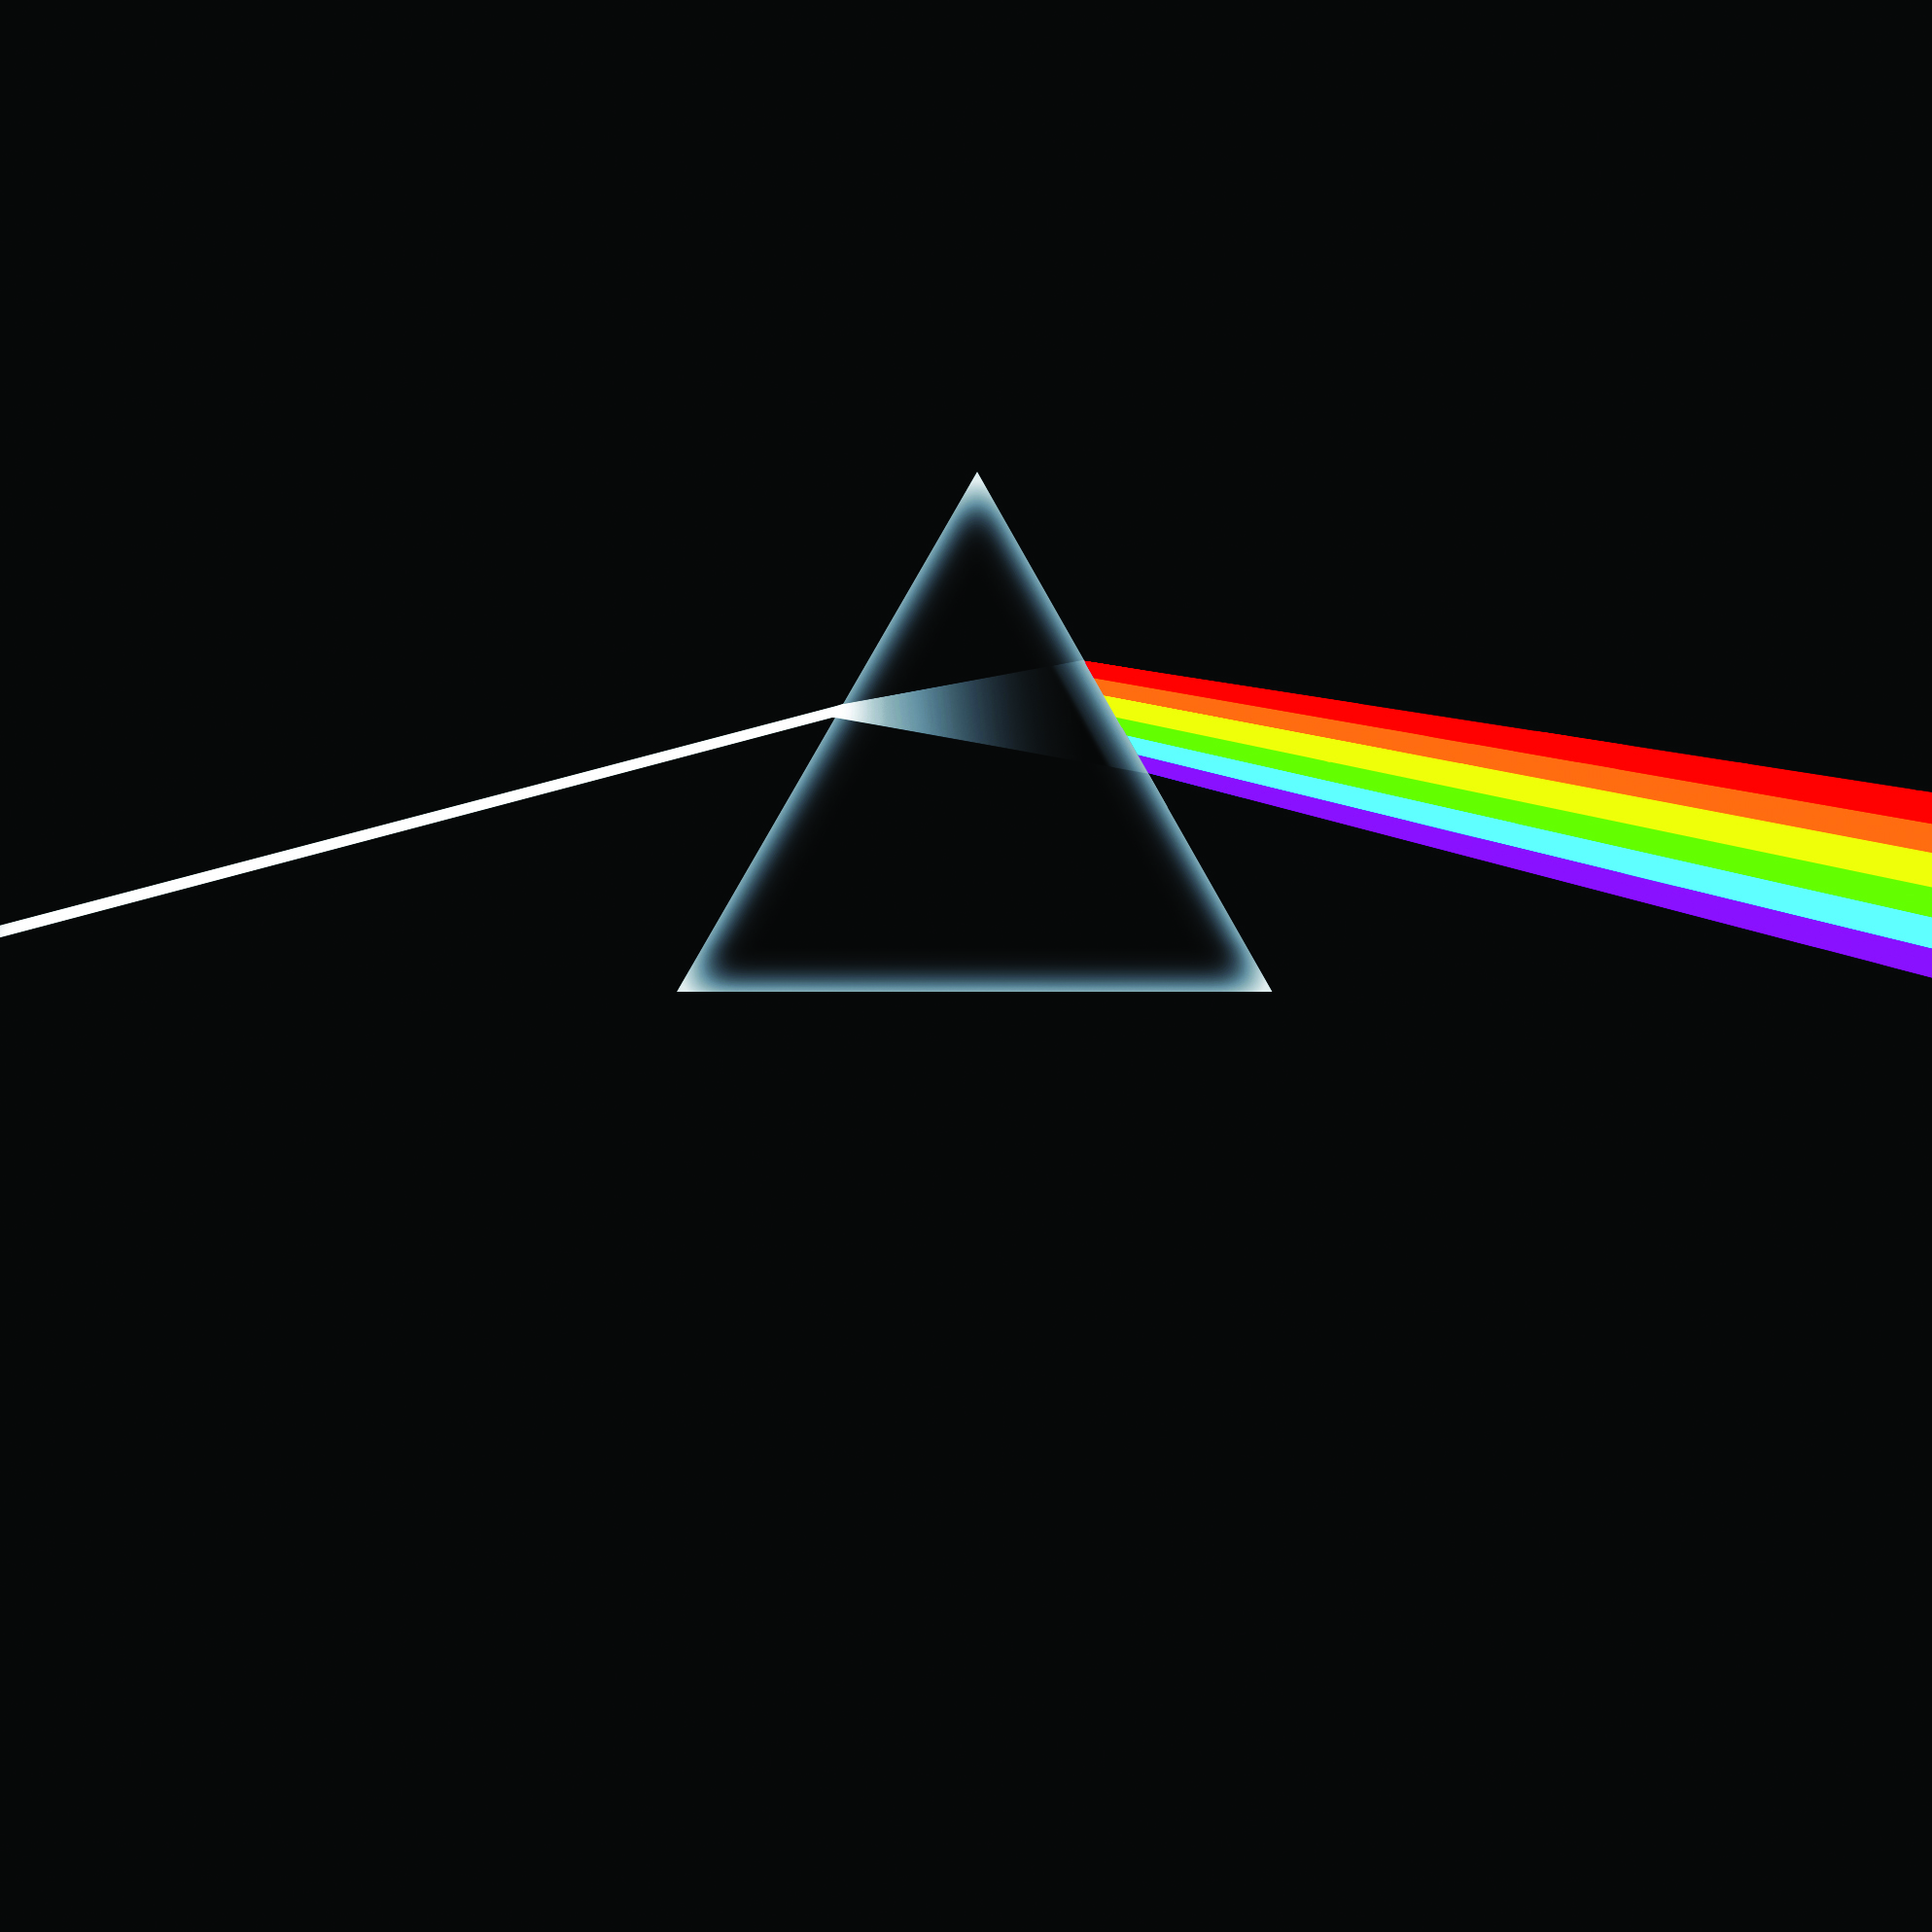 Pink_floyd_dark_side_of_the_moon